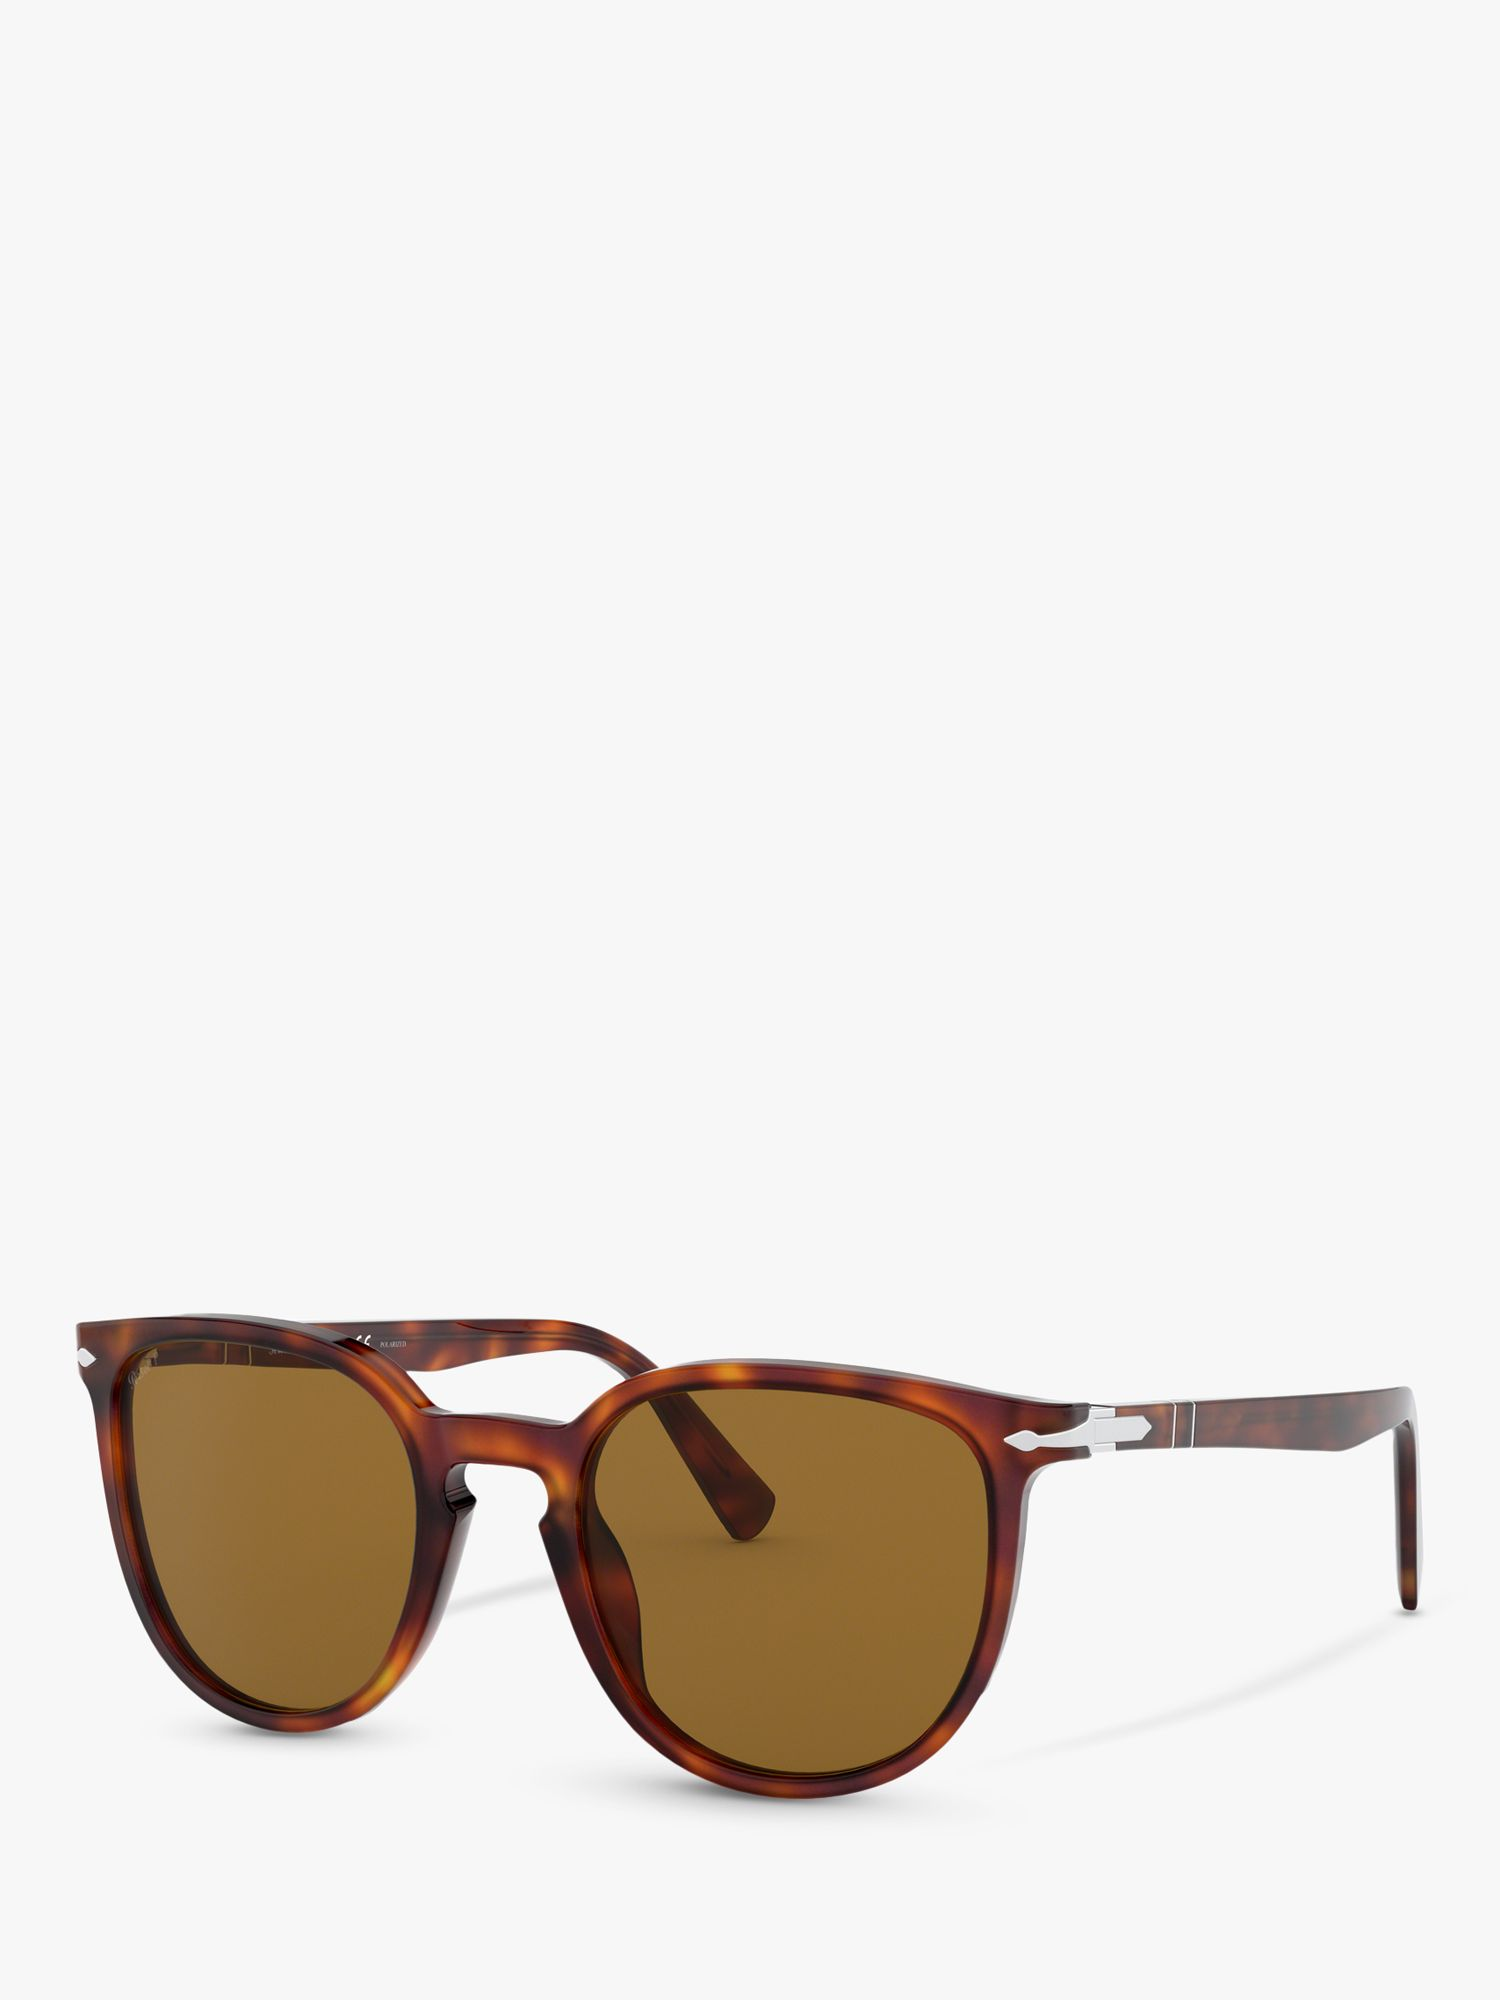 Persol Persol PO3226S Special Edition Polarised Oval Sunglasses, Havana/Brown